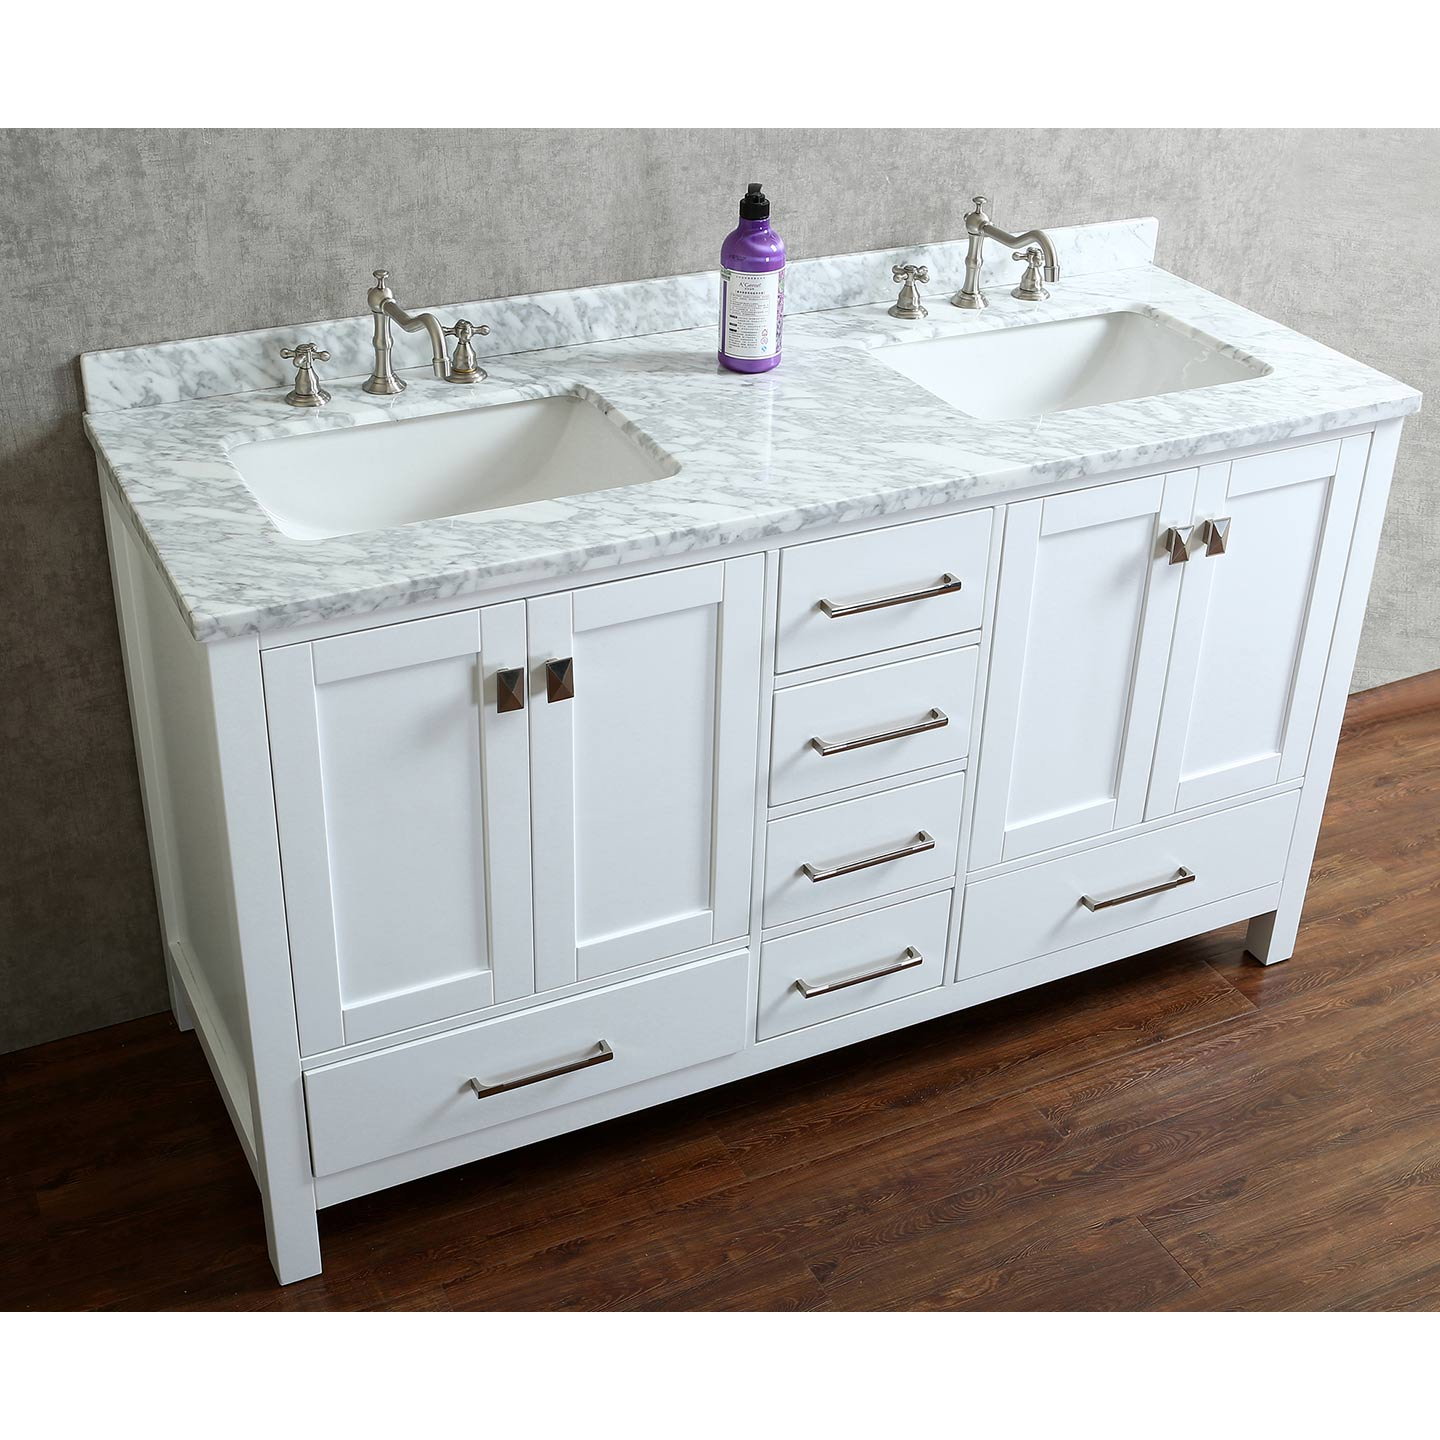 60 white bathroom vanity - Vincent 60 Solid Wood Double Bathroom Vanity In White Hm 13001 60 Wmsq Wt